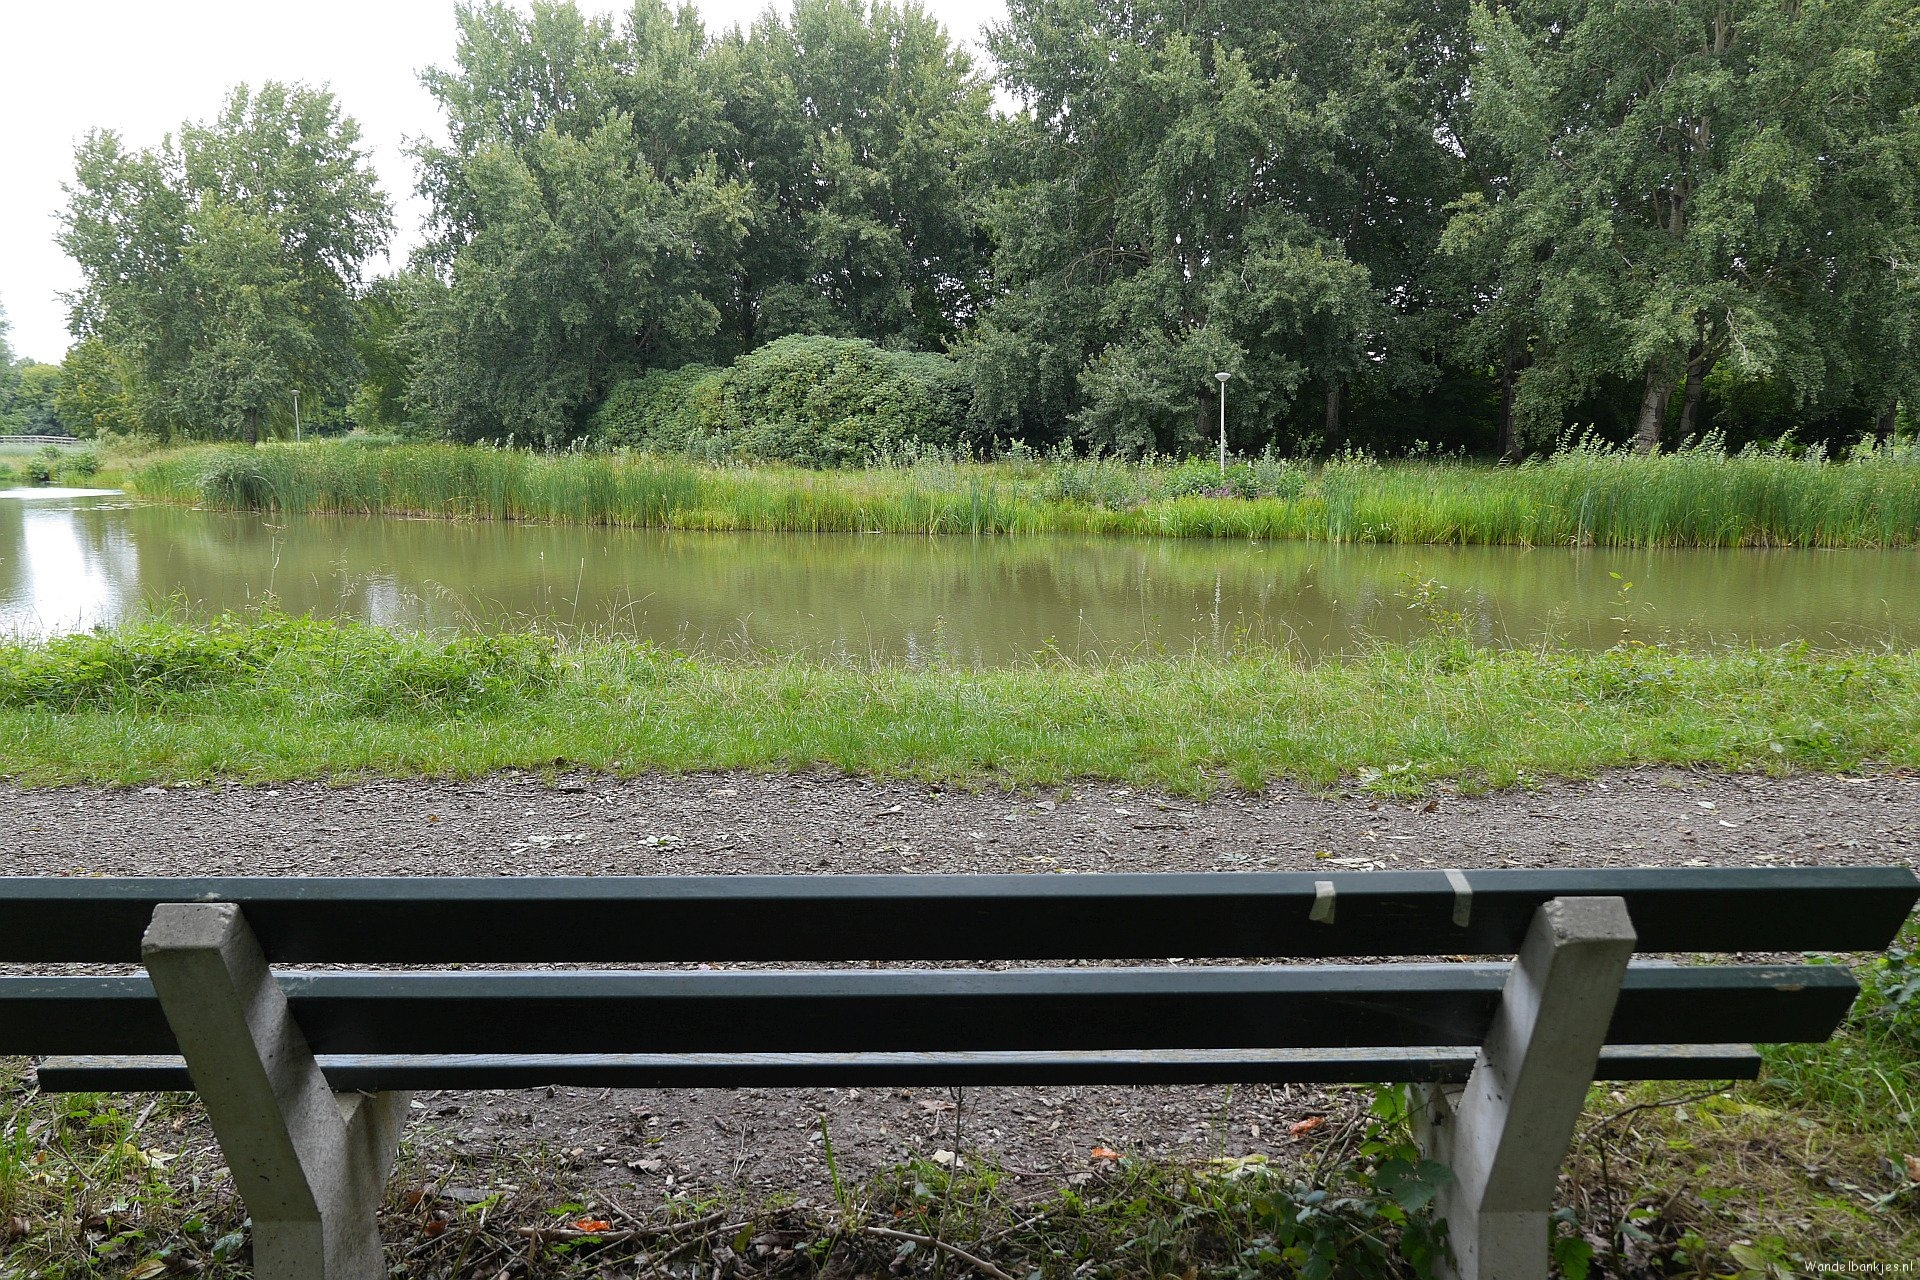 rt-arthurskm-a-lanes-singular-here-in-park-city-dike-in-nijmegen-just-a-beautiful-view-over-a-pond-httpst-co9